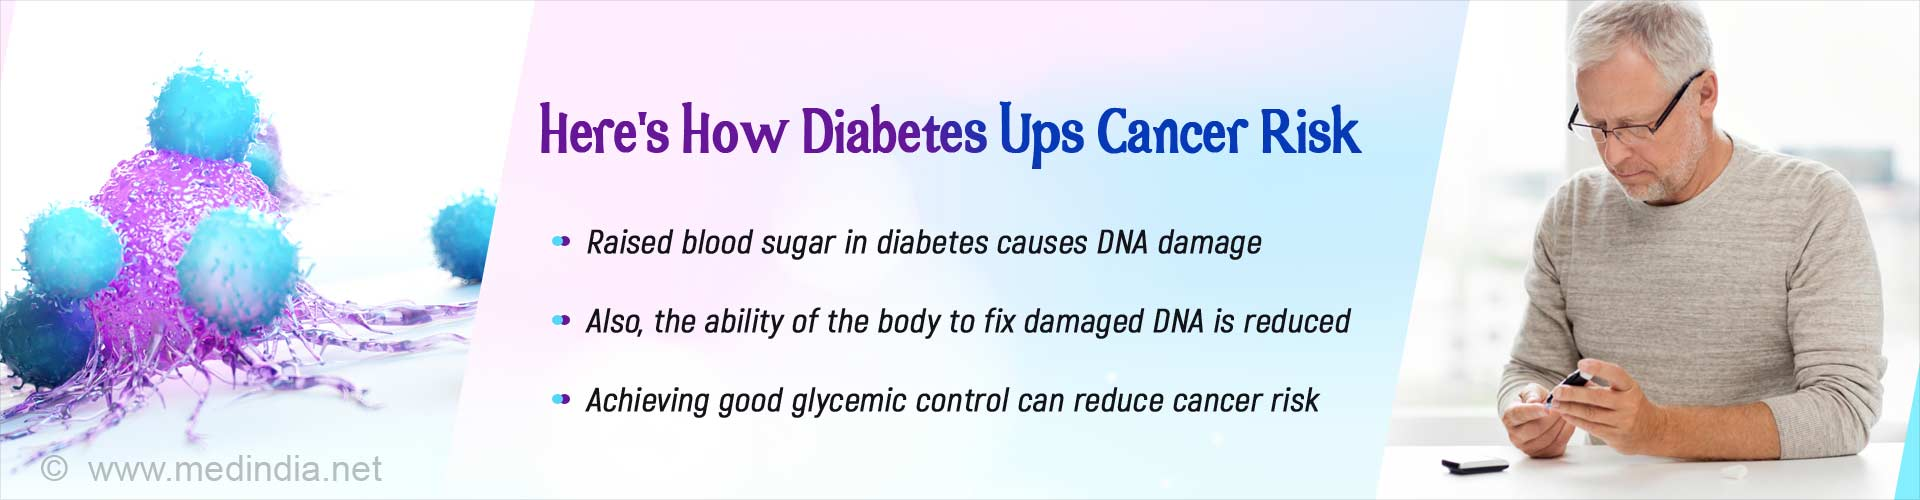 Diabetes Increases Cancer Risk: Here's How